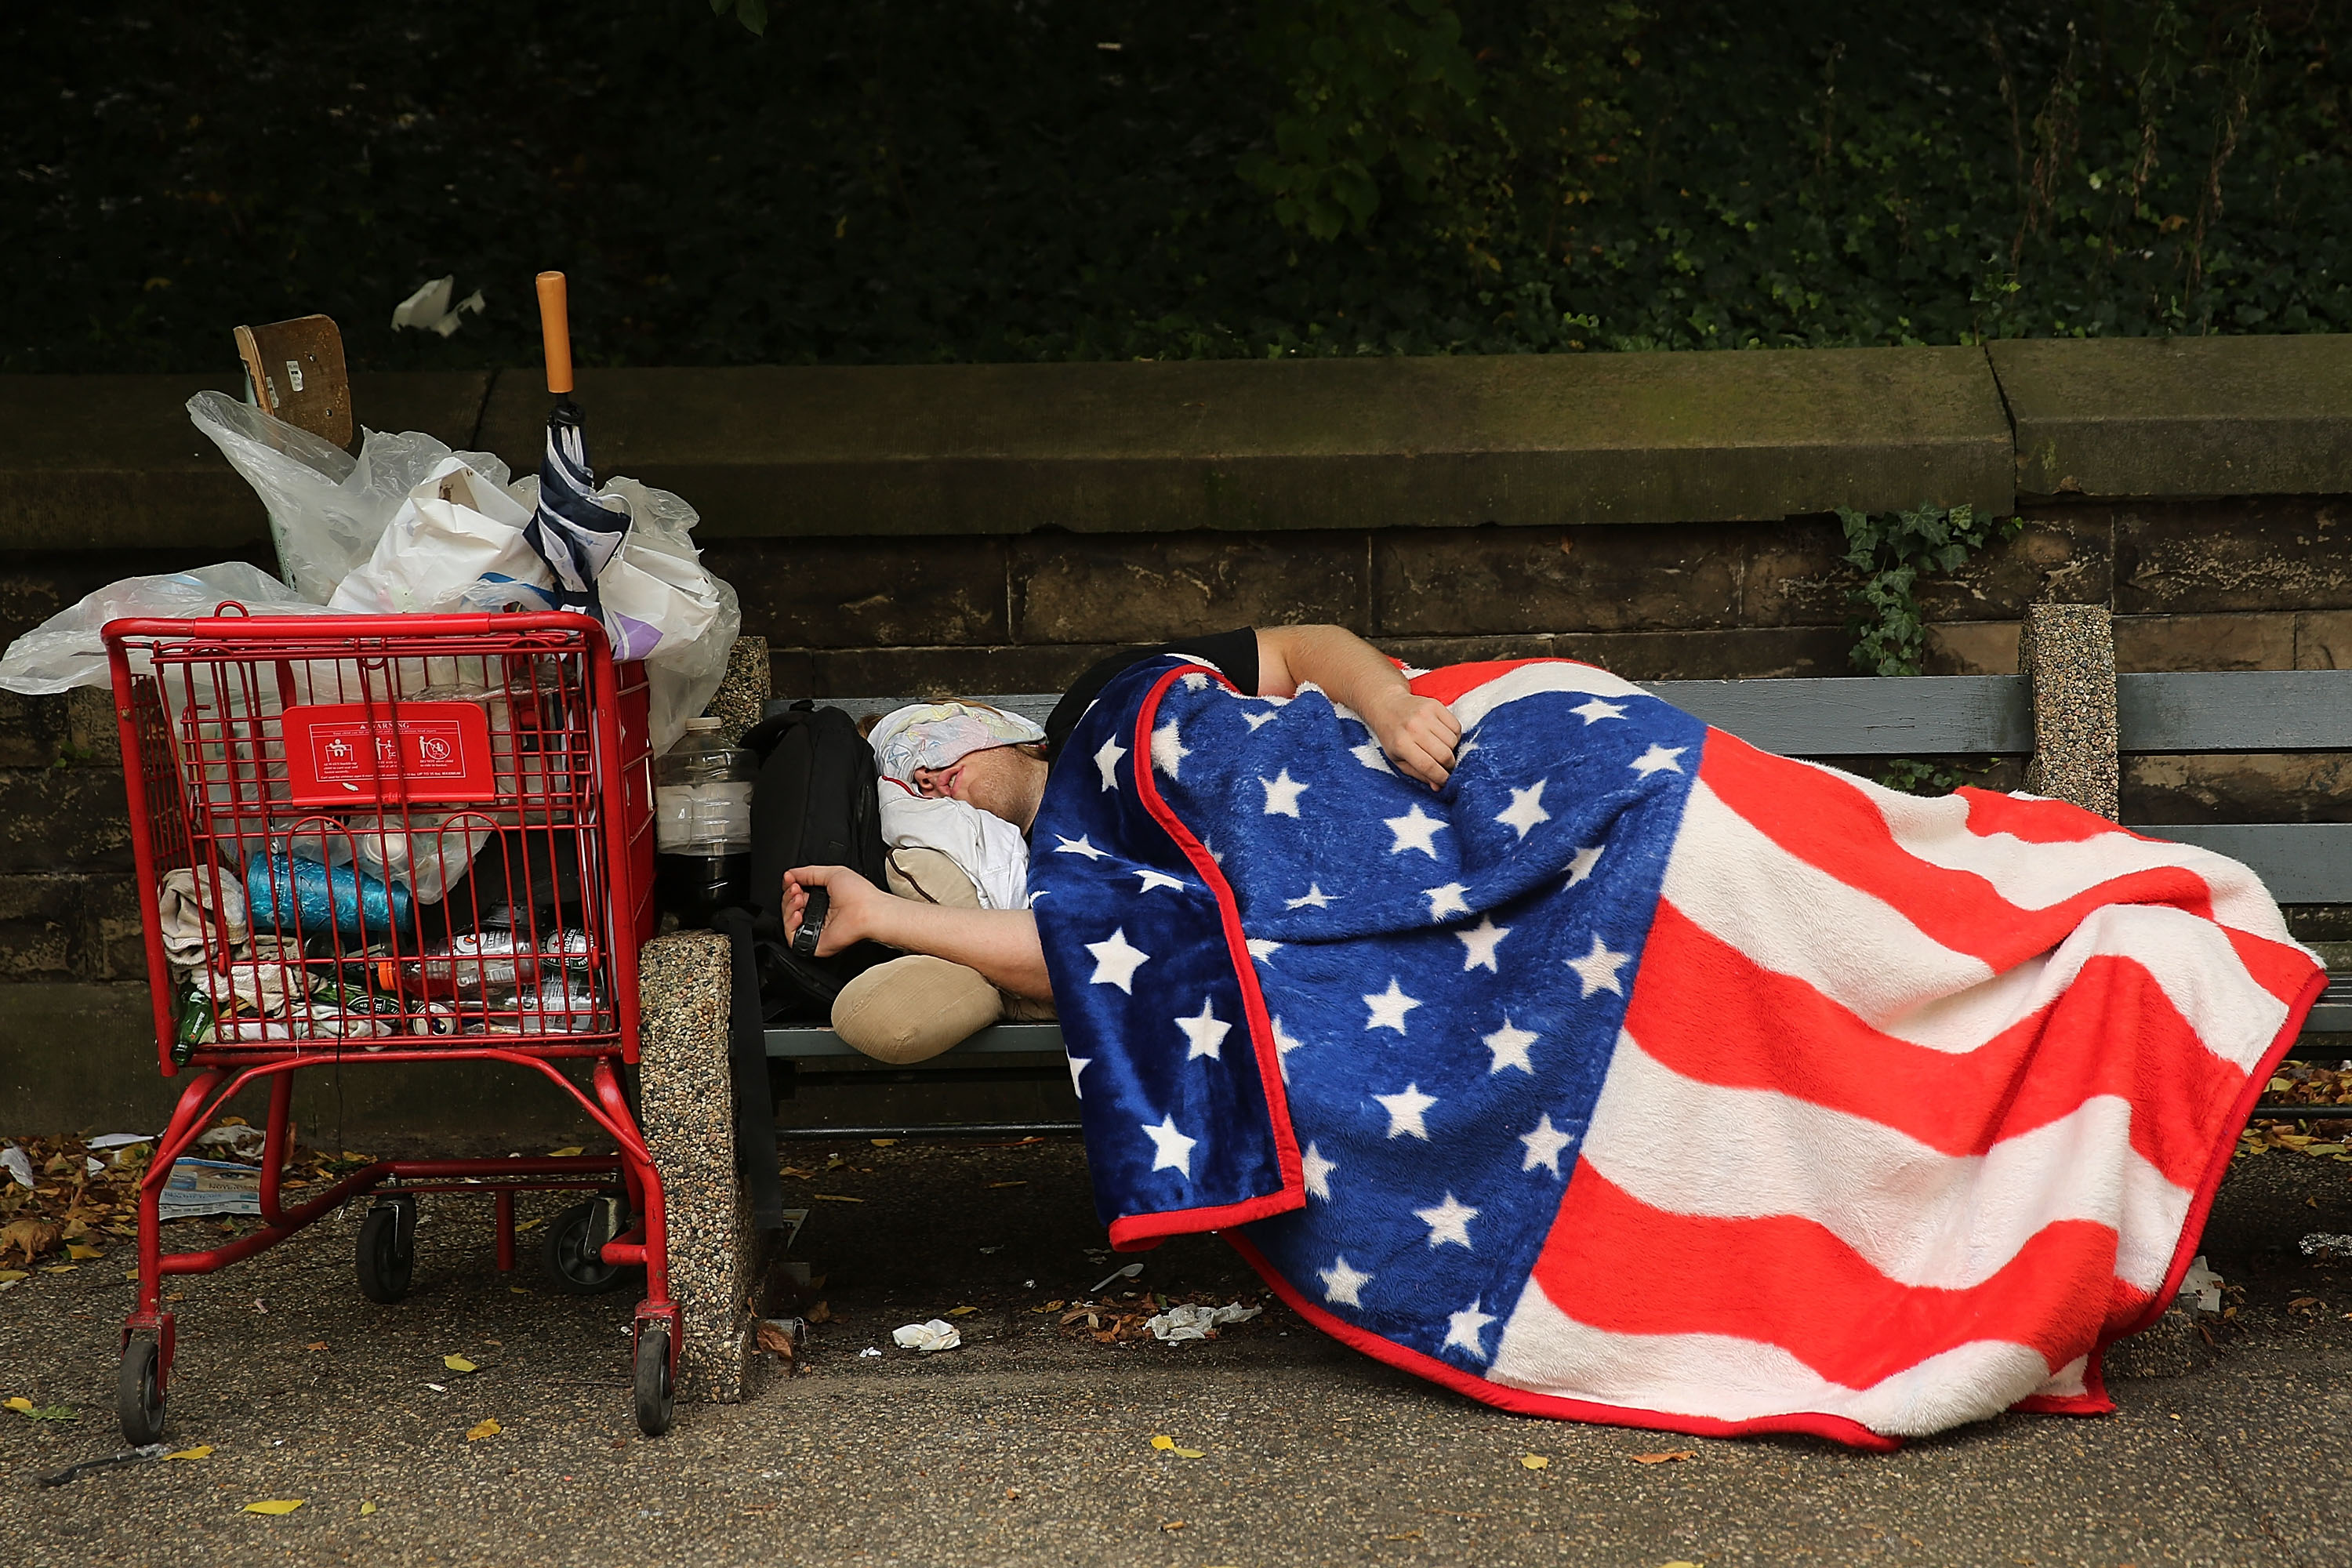 NEW YORK, NY - SEPTEMBER 10: A homeless man sleeps under an American Flag blanket on a park bench on September 10, 2013 in the Brooklyn borough of New York City. (Photo by Spencer Platt/Getty Images)